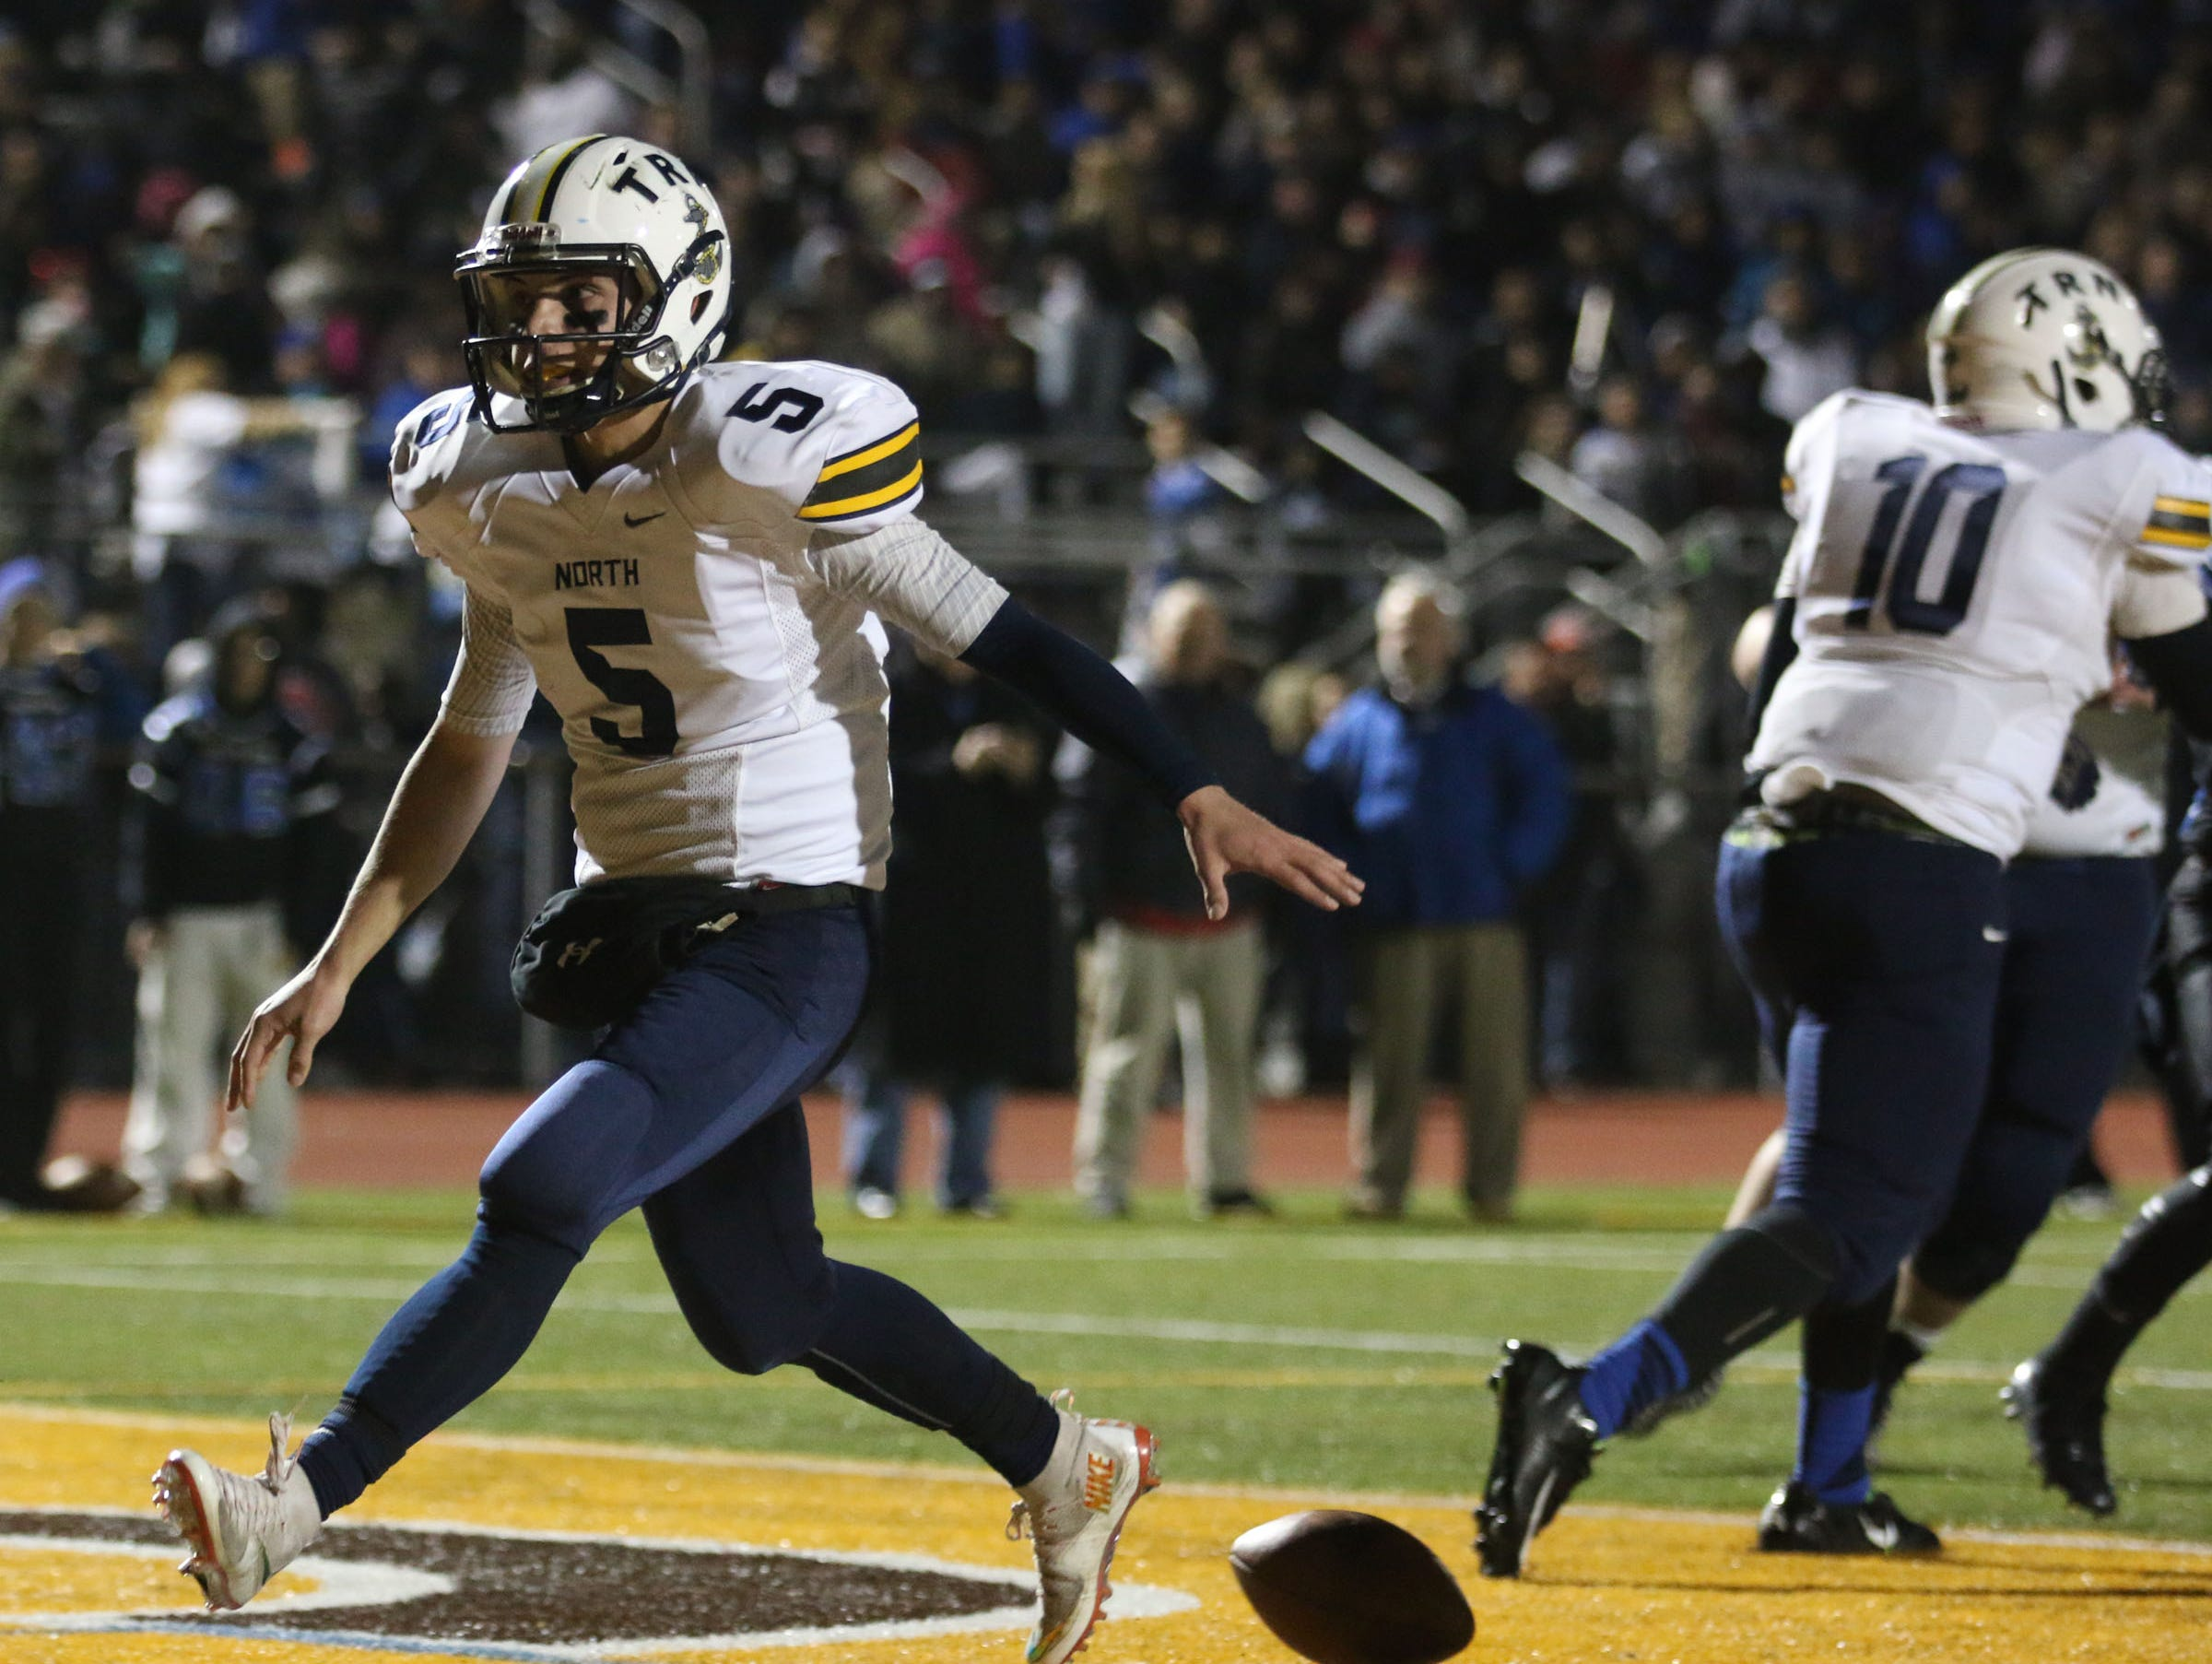 Toms River North's Michael Husni scores a touchdown. Toms River North defeats Williamstown for the NJSIAA Group V State Championship title. Glassboro, NJ Saturday, December 5, 2015 @dhoodhood